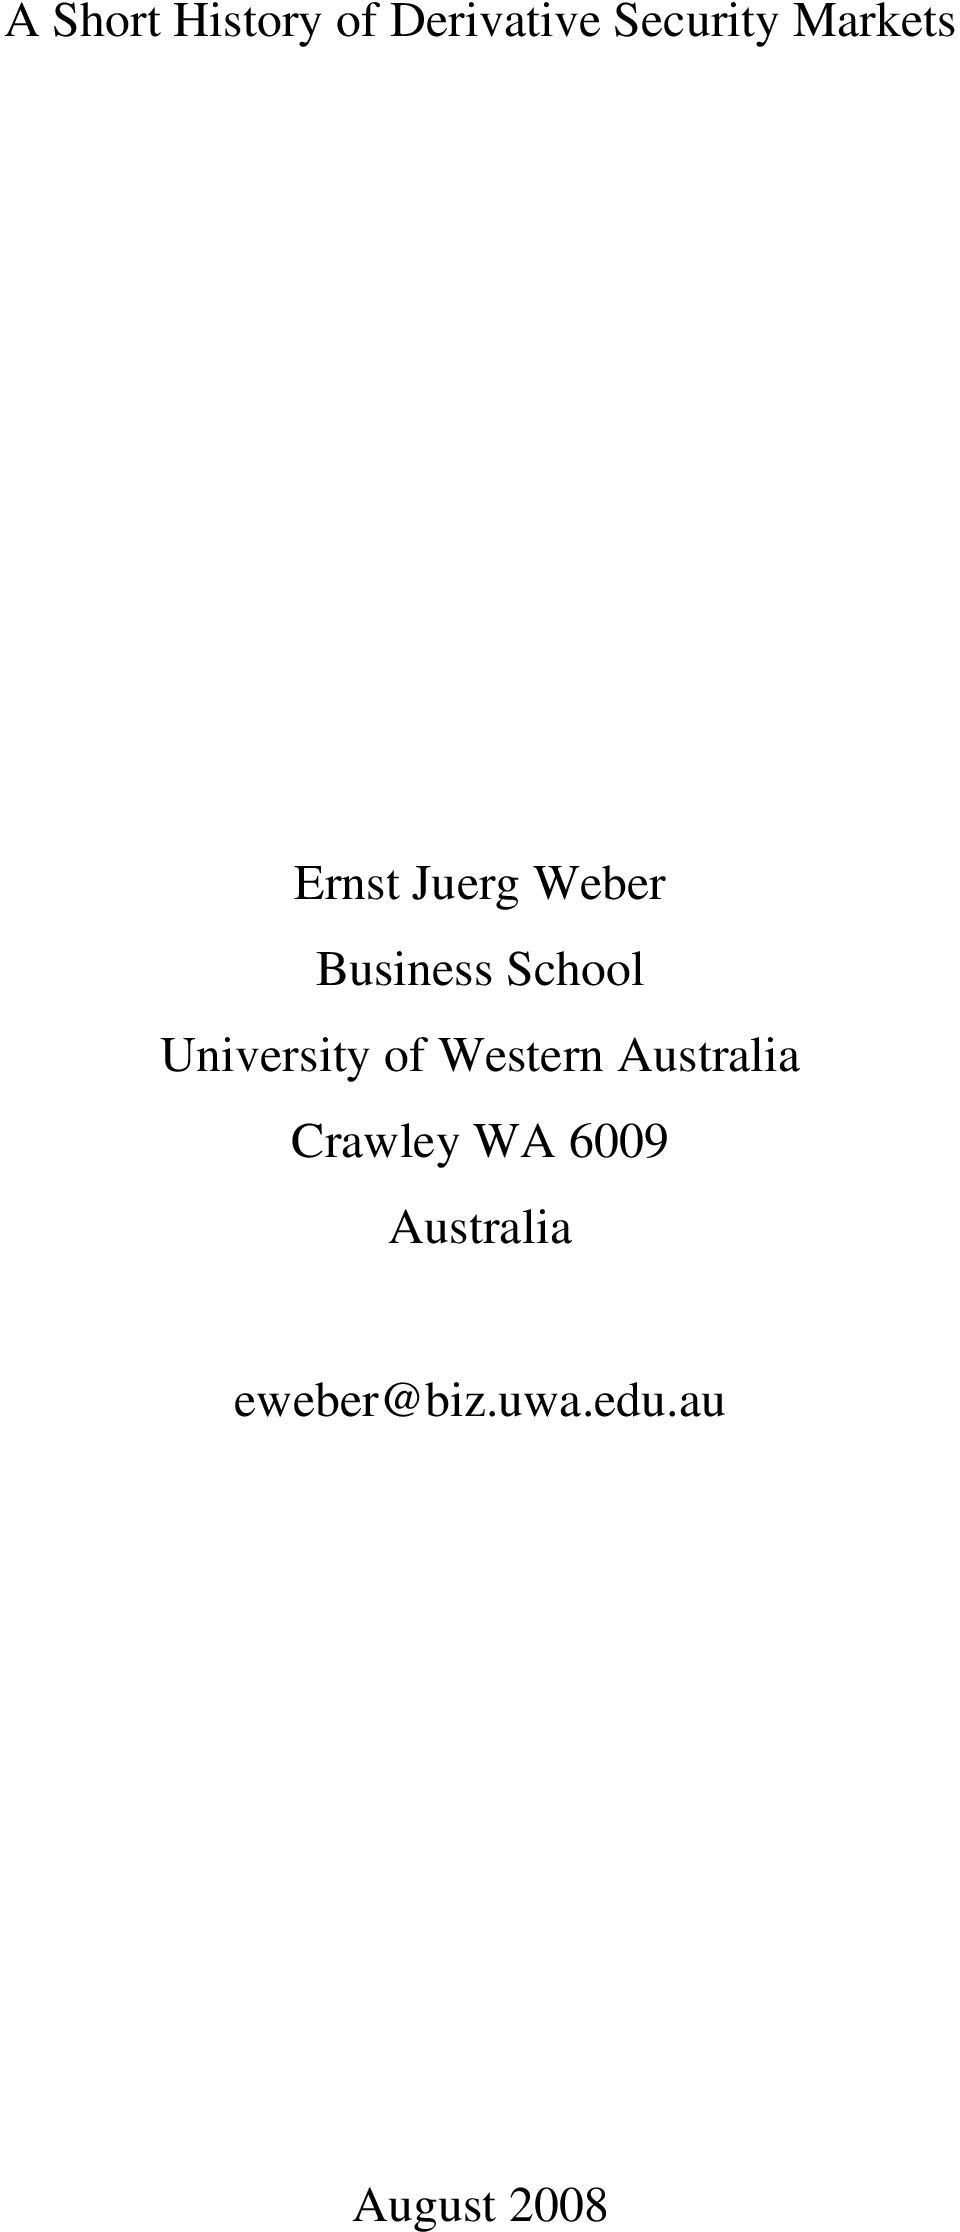 University of Western Australia Crawley WA